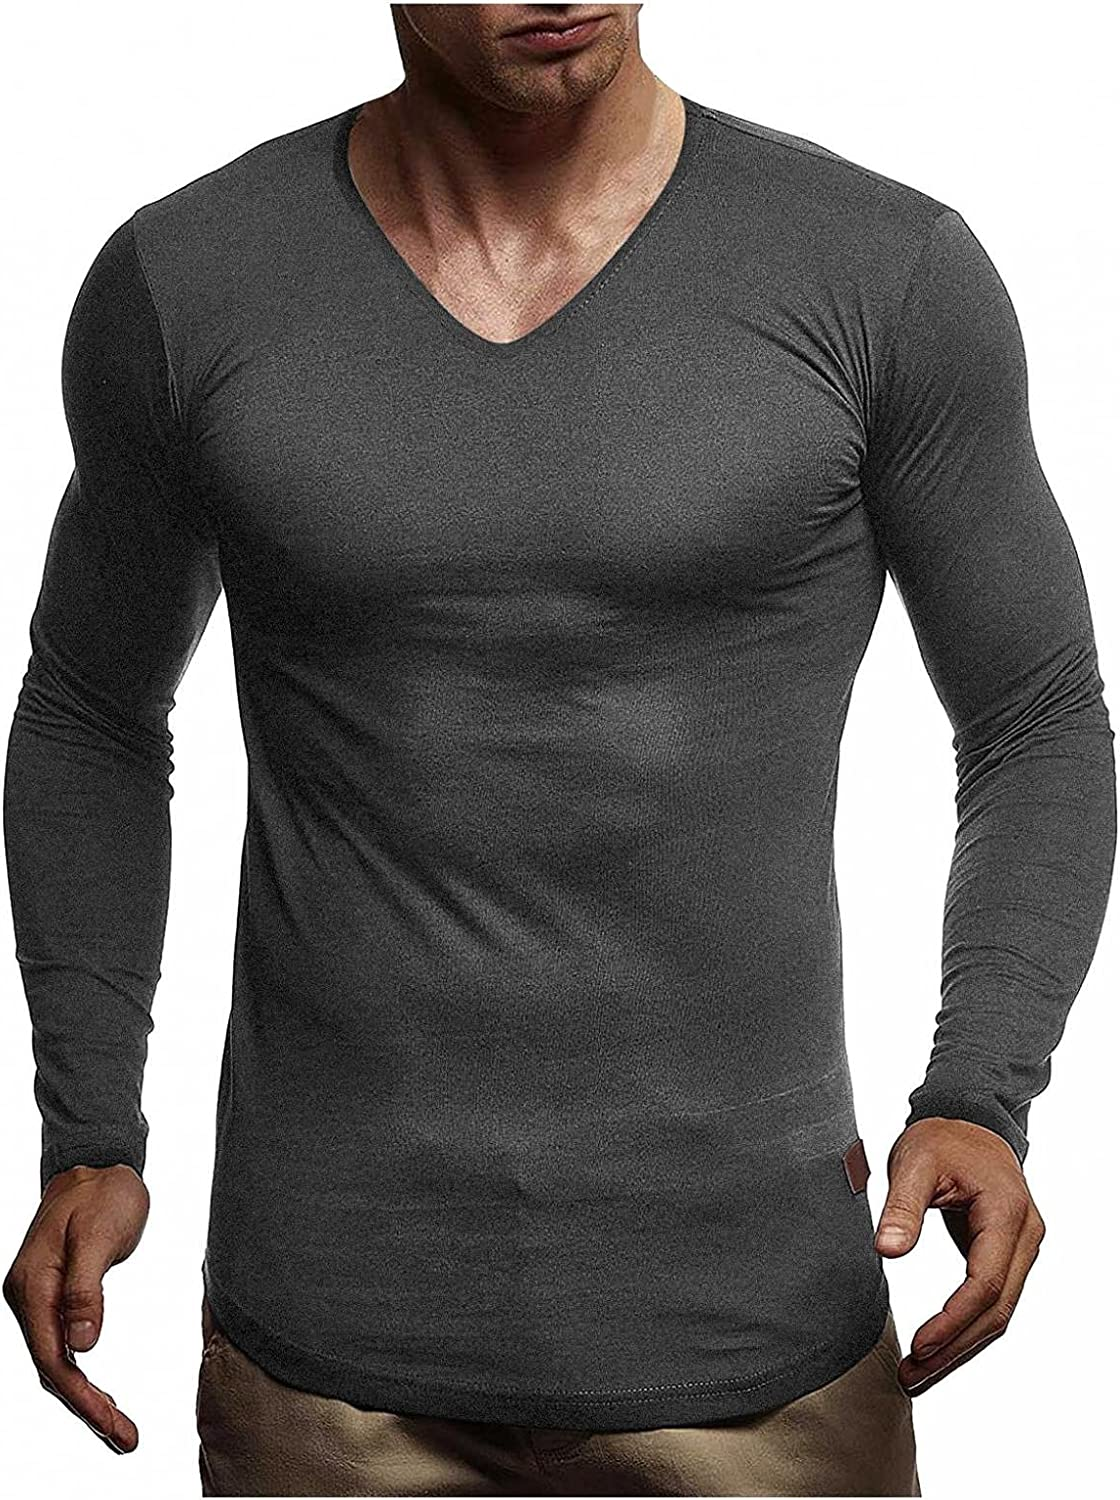 Aayomet Men's Tee Shirts Solid Tops Casual Workout Athletic Long Sleeve Pullover T-Shirts Blouses for Men